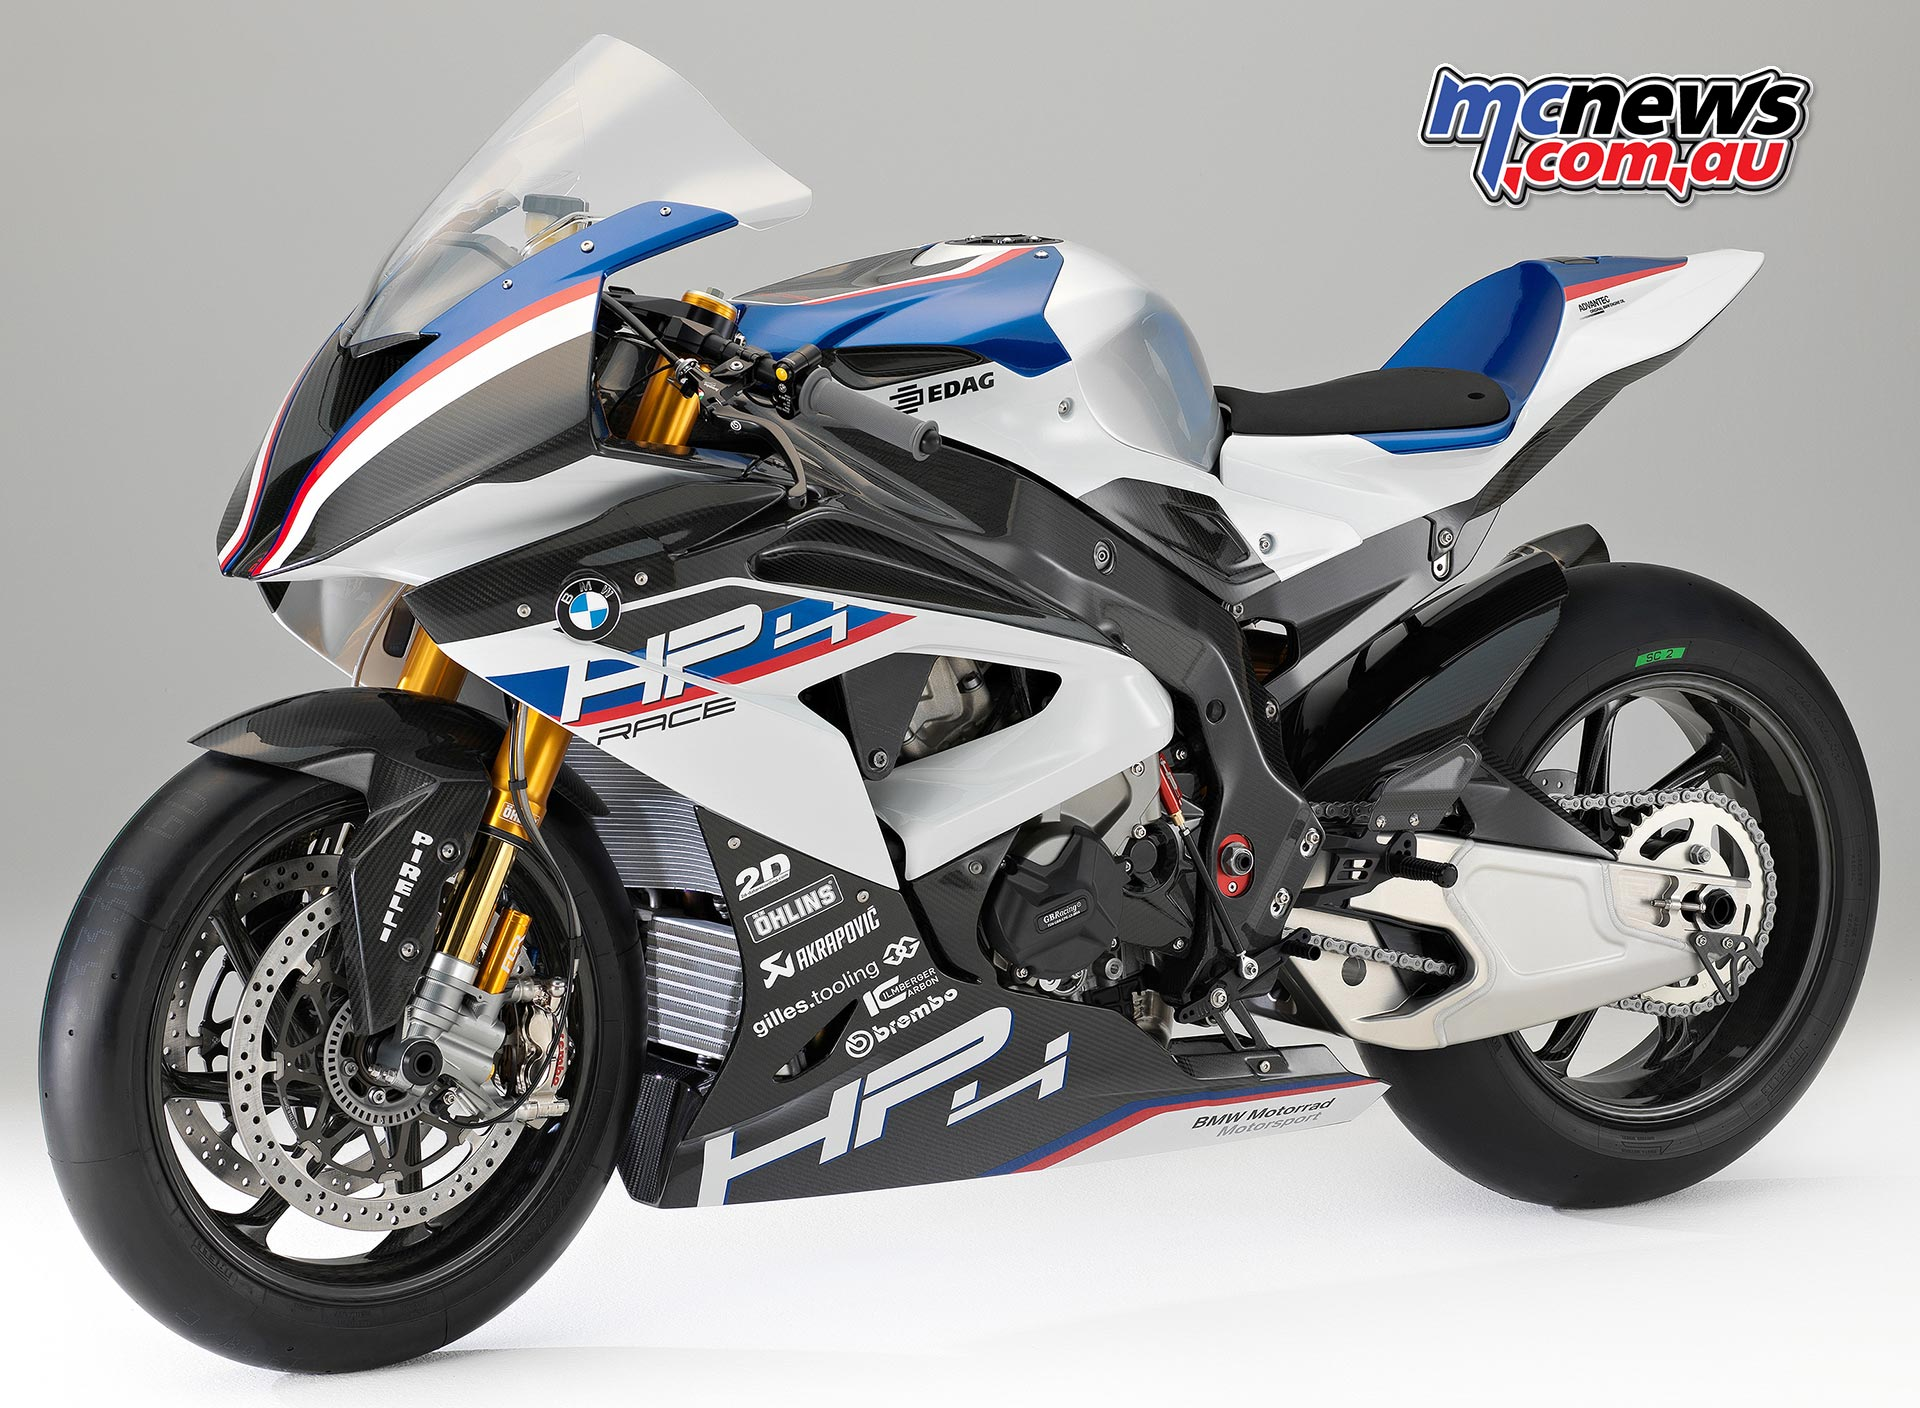 Bmw Hp4 Race Ridden Reviewed Motorcycle News Sport And Reviews